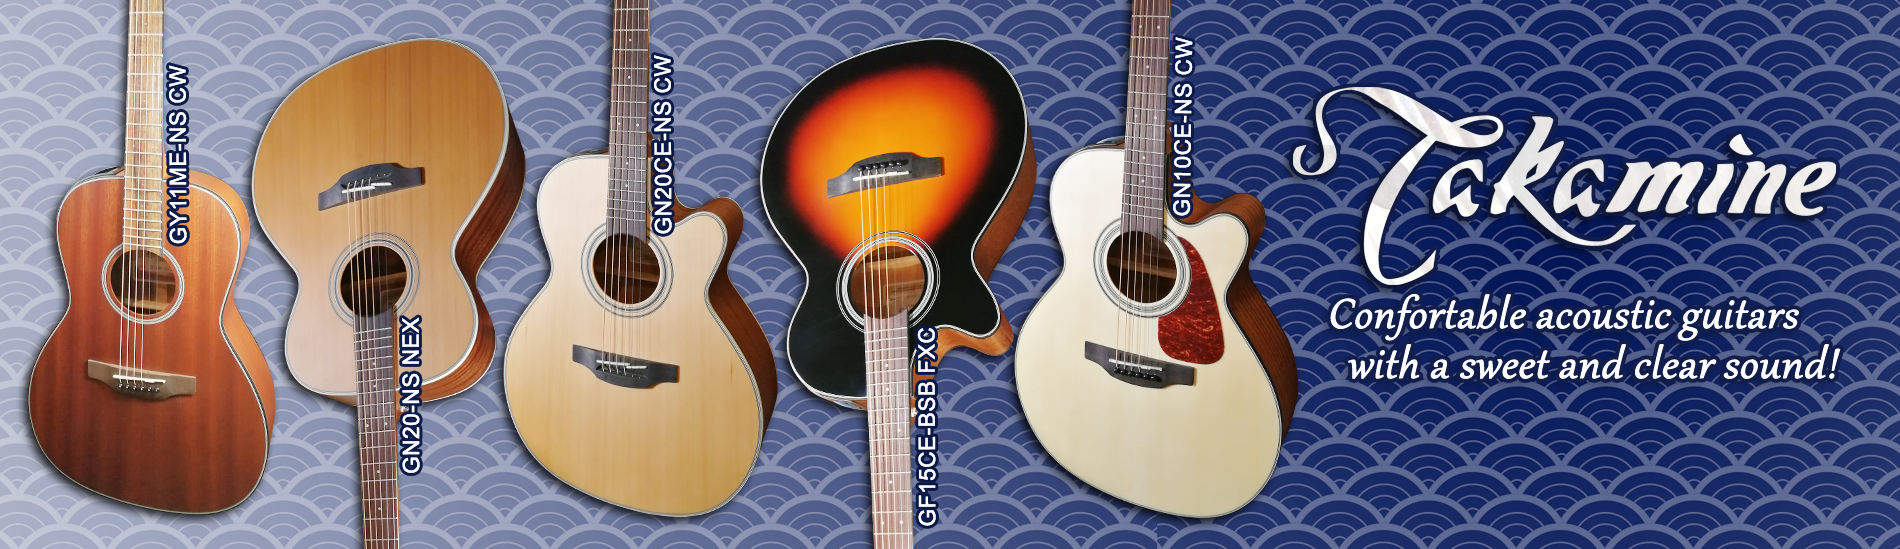 Takamine - Confortable acoustic guitars with a sweet and clear sound!